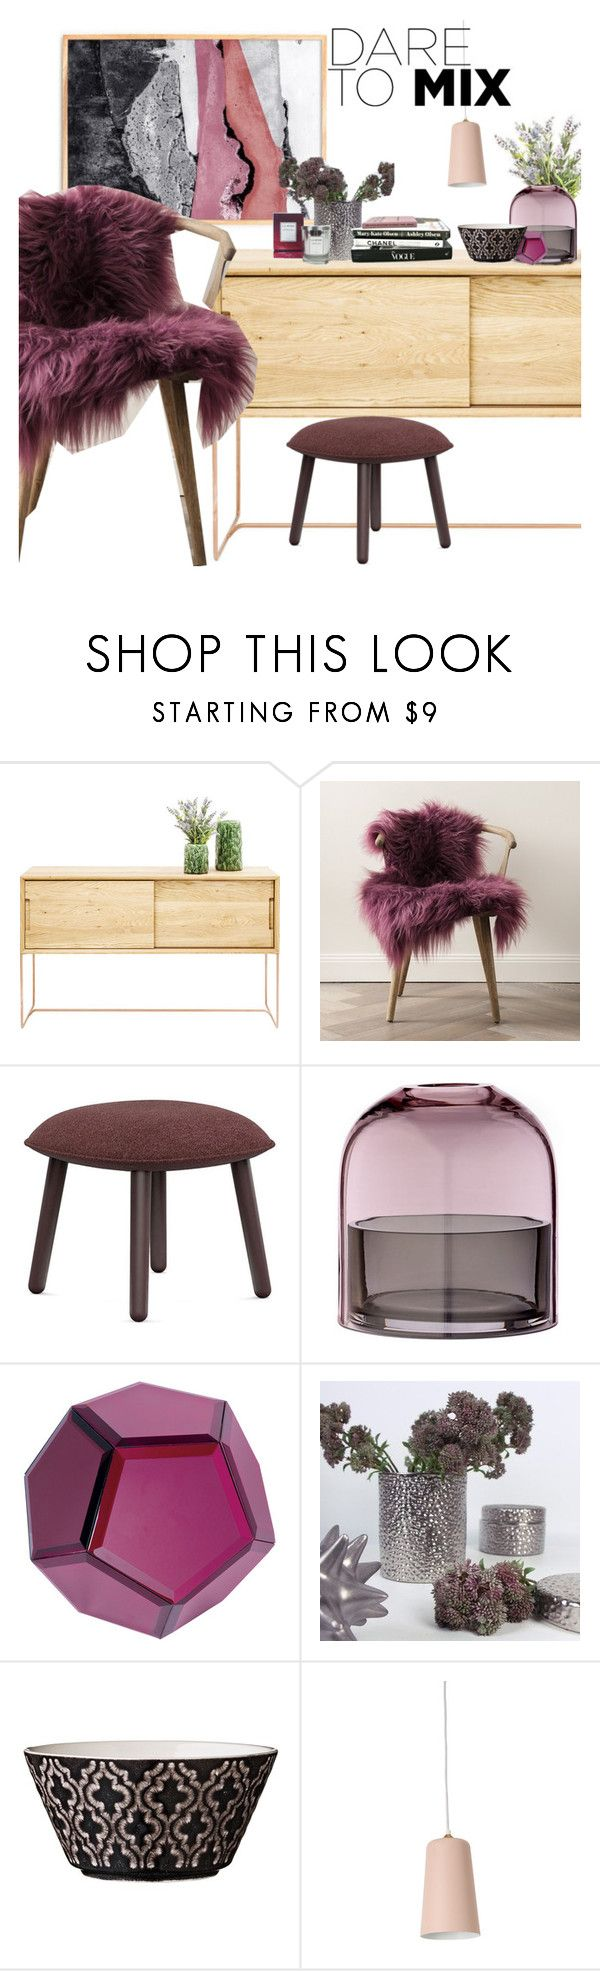 Home decor collage from january 2017 featuring currey company - Dare To Mix By Ghomecollection On Polyvore Featuring Interior Interiors Interior Design Home Homedesign Homesdecorative